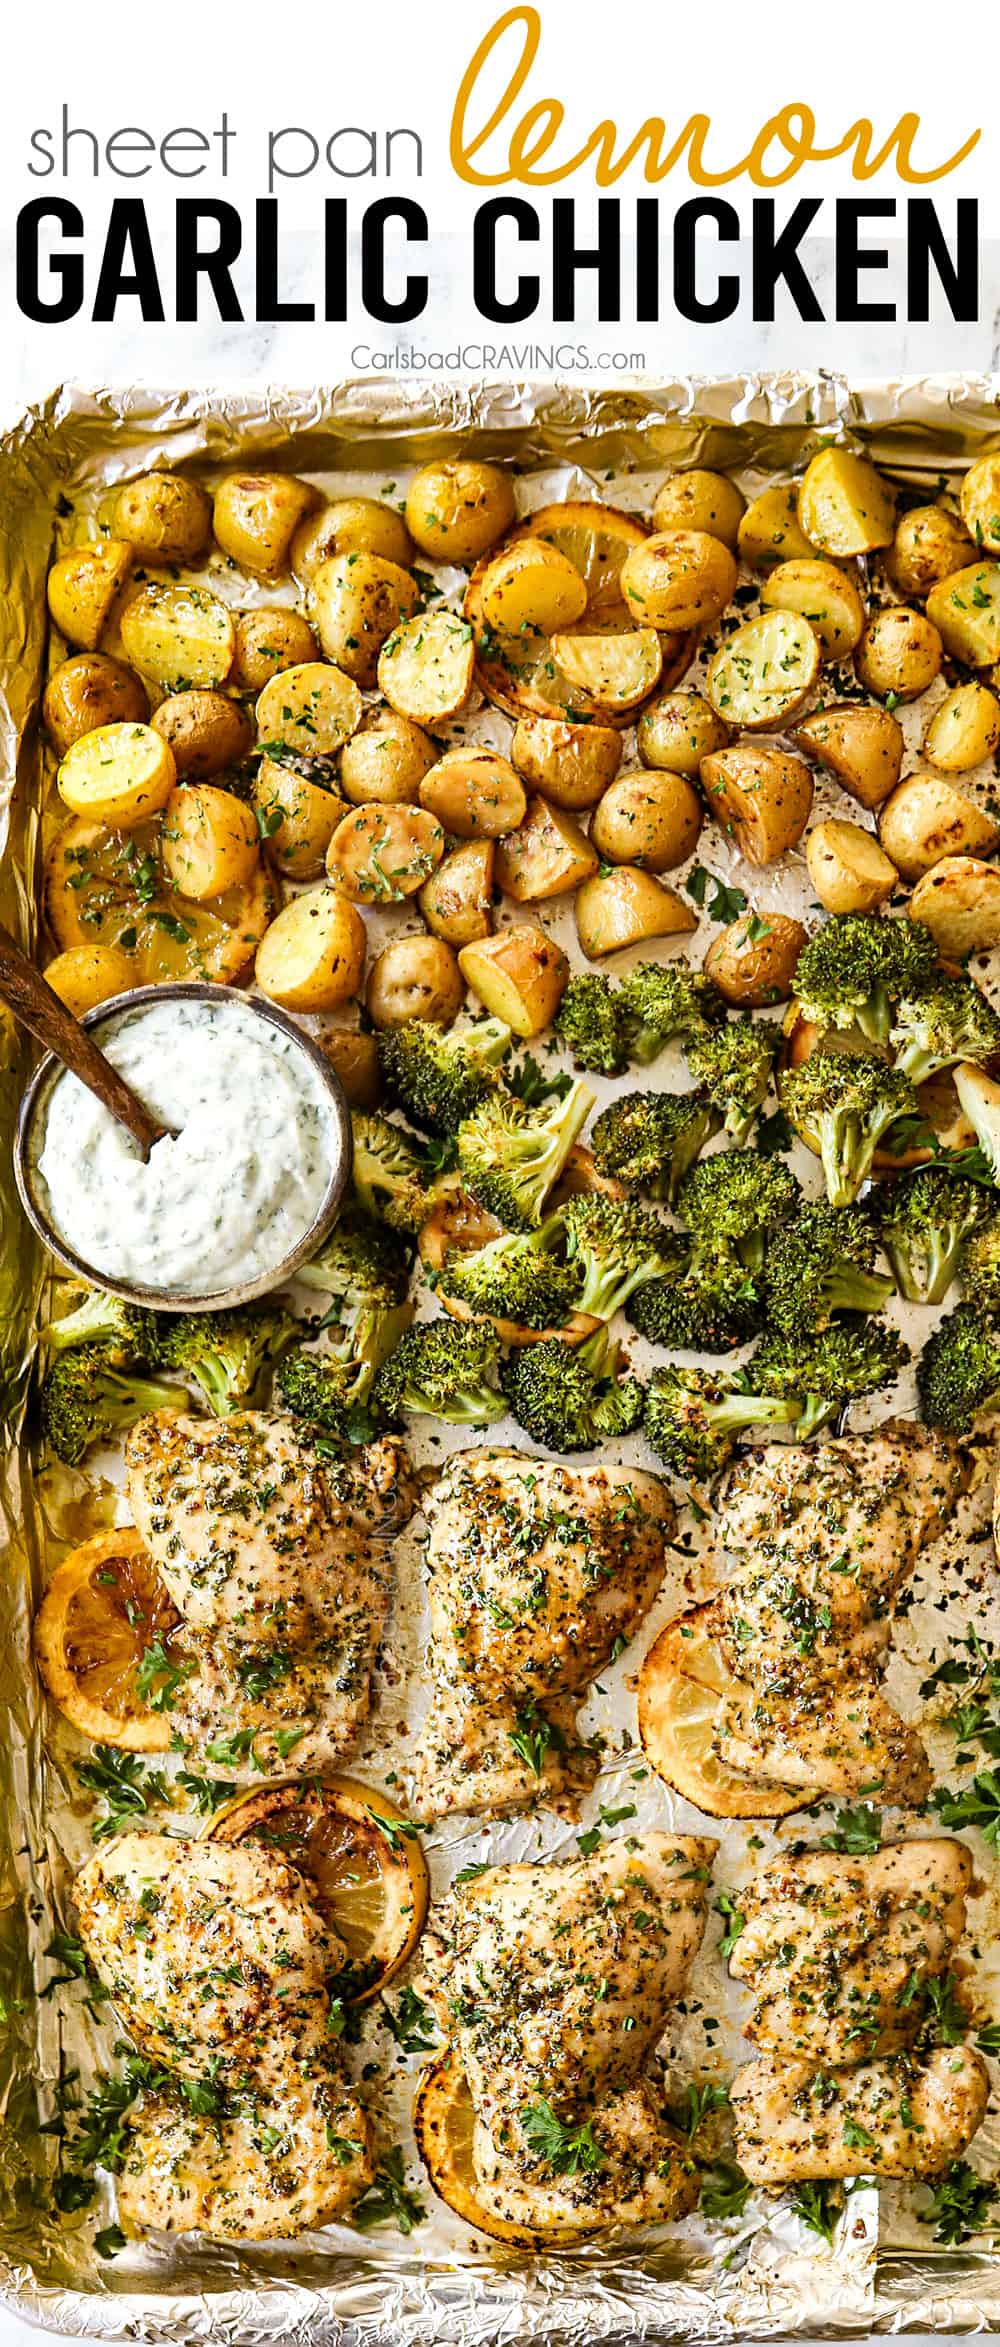 lemon garlic chicken thighs with broccoli and potatoes on a sheet pan baked in the oven